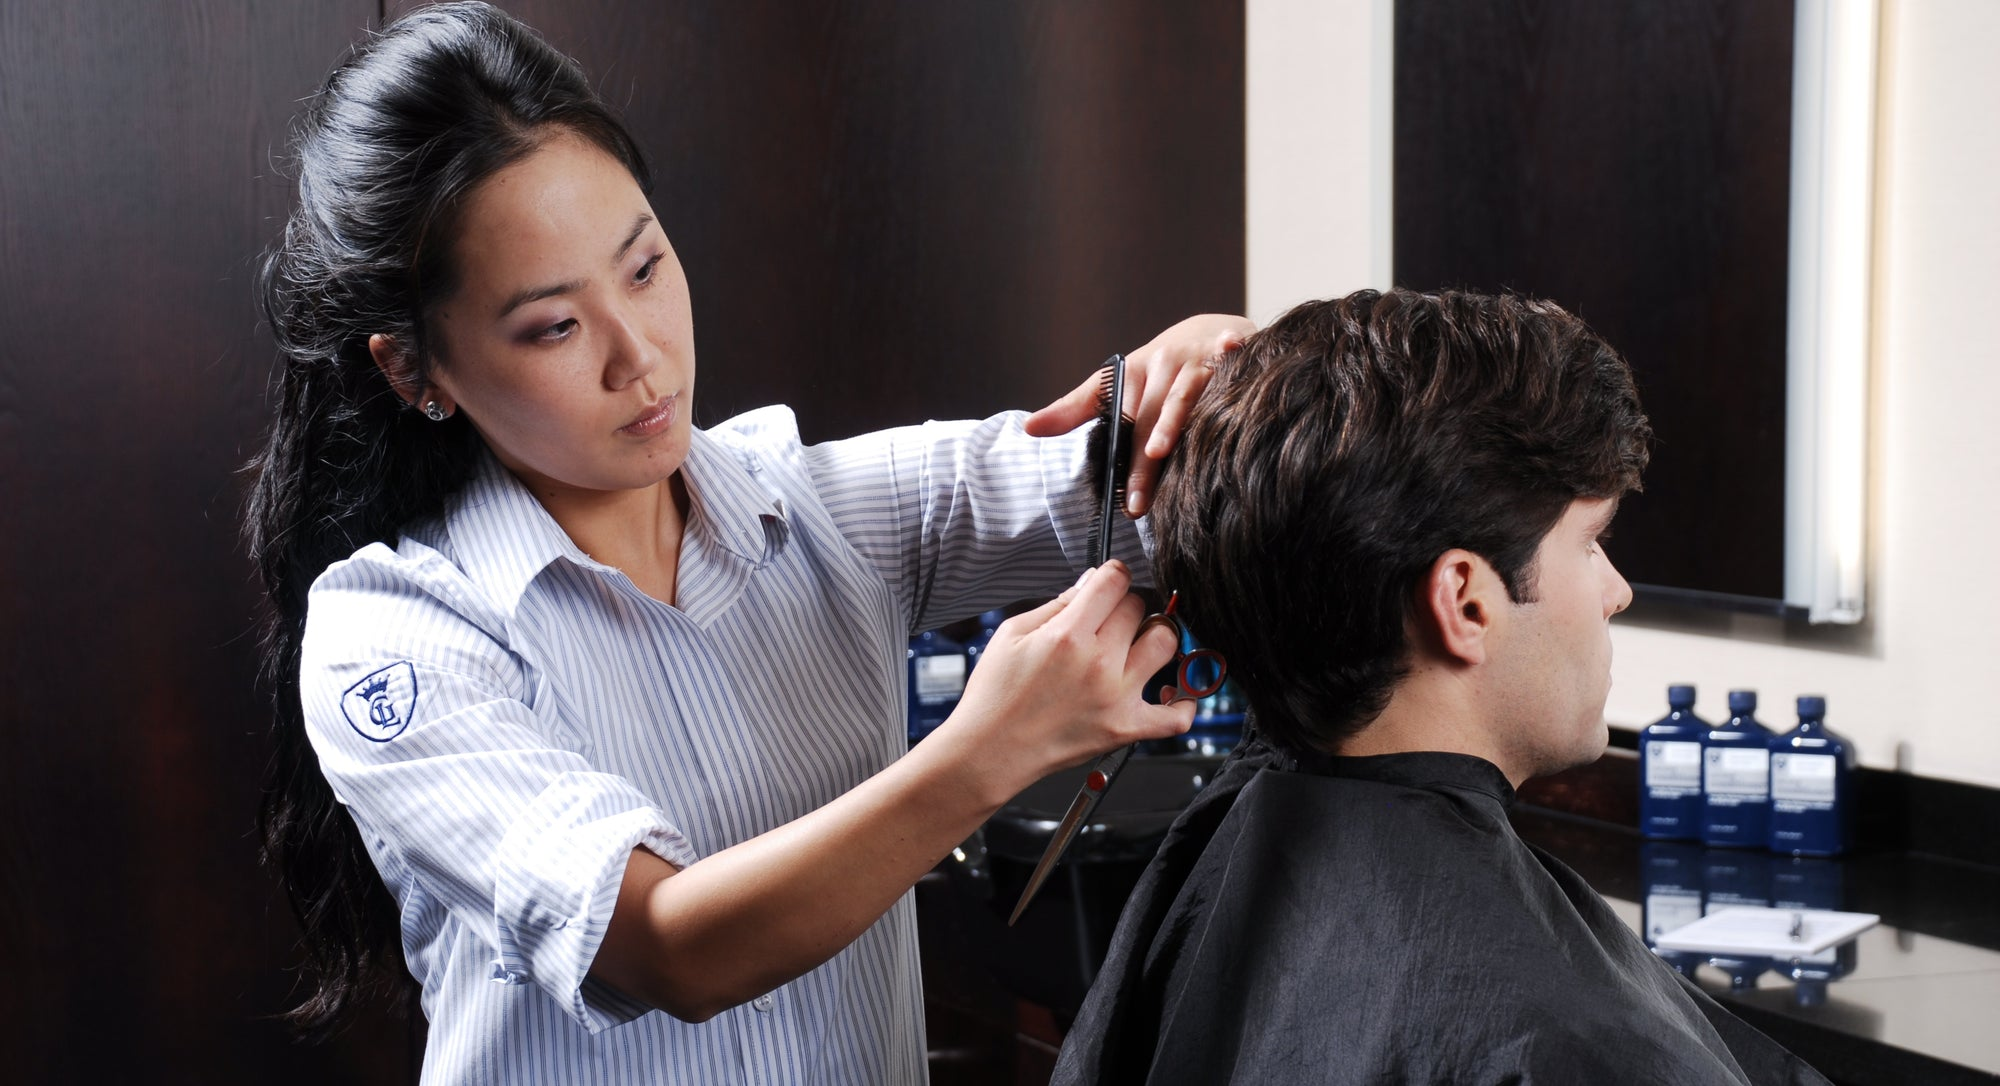 How To Chose A Men's Salon In Washington, DC